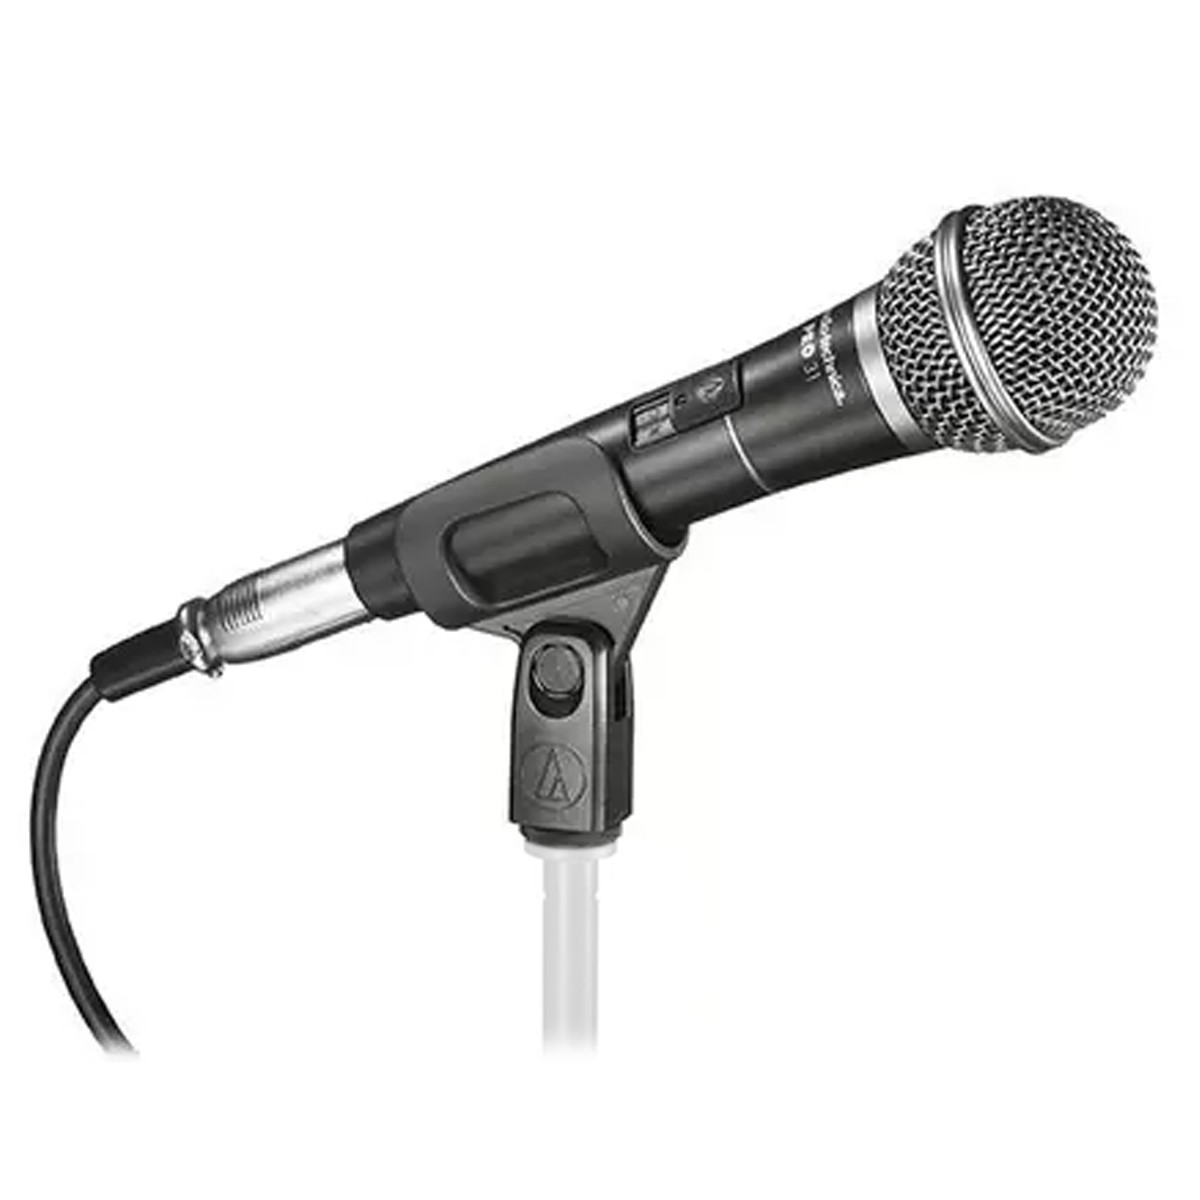 PRO31 AUDIO-TECHNICA MIC CARDIOIDE P/ VOCAL CHAVE CABO 4.5M